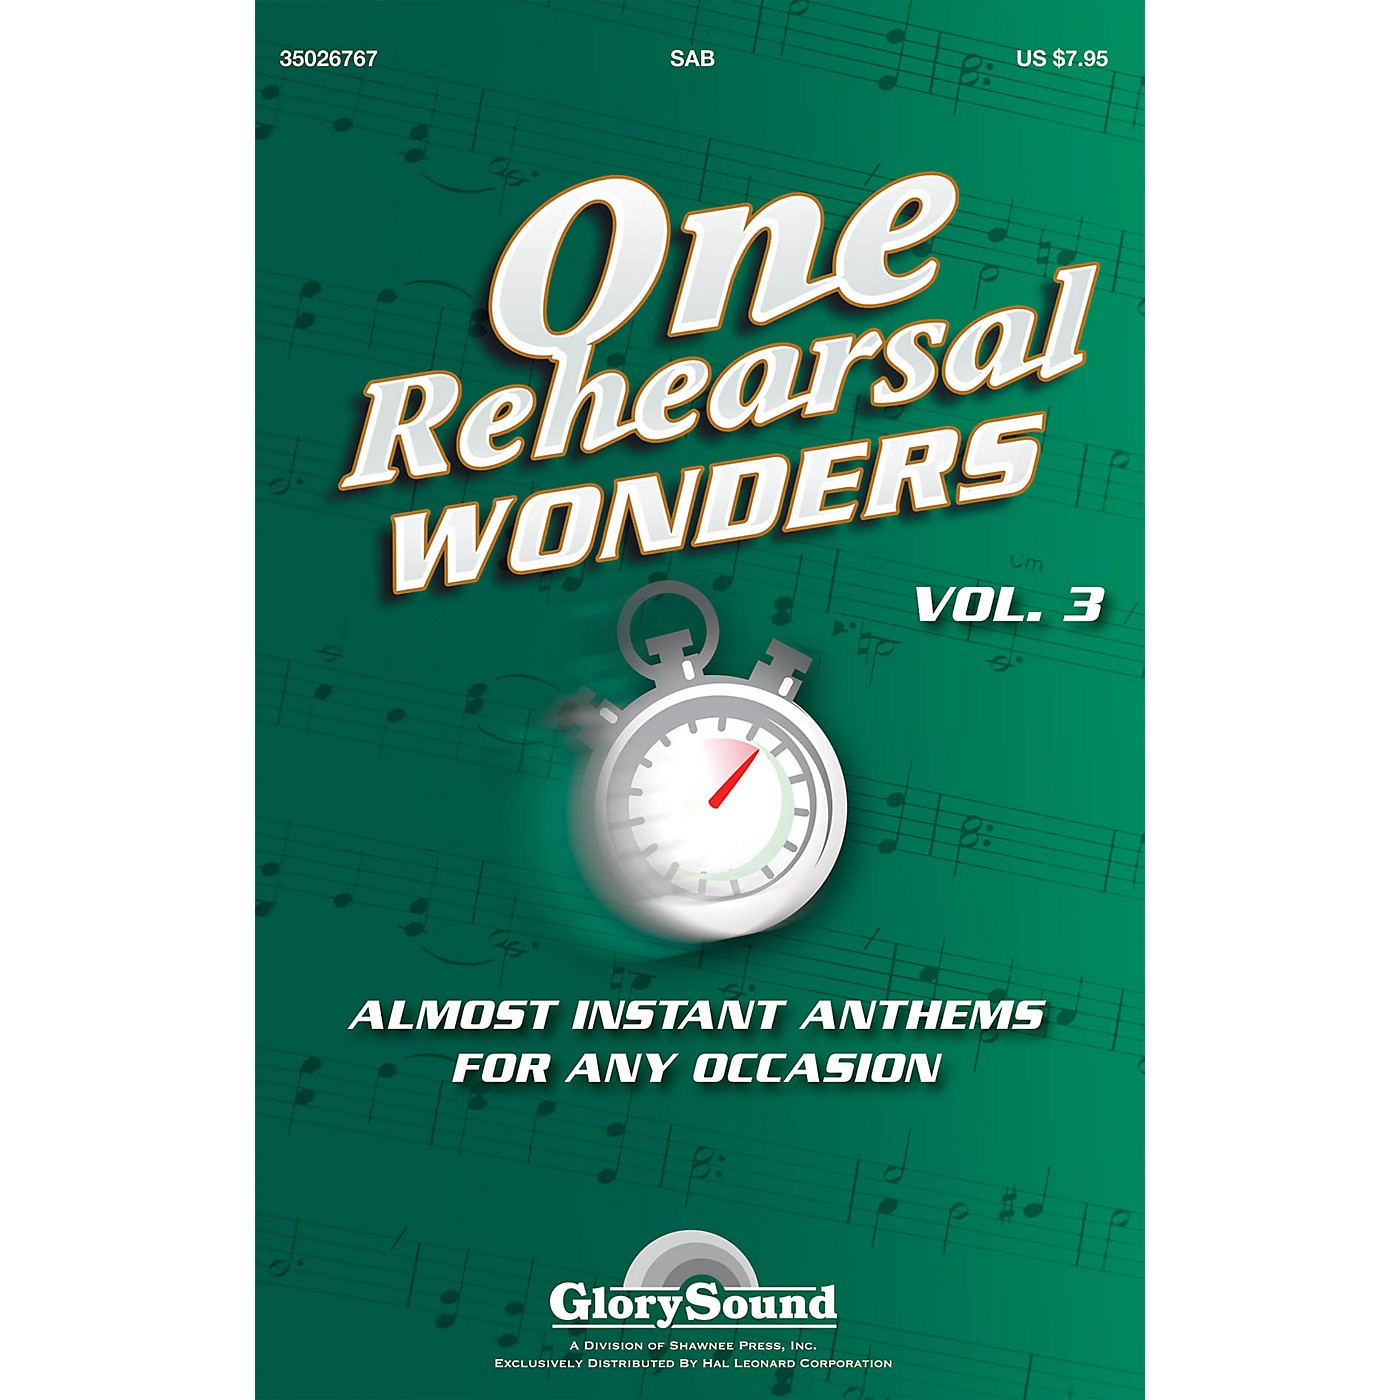 Shawnee Press One Rehearsal Wonders - Volume 3 (Almost Instant Anthems for Any Occasion) SAB by J. Paul Williams thumbnail